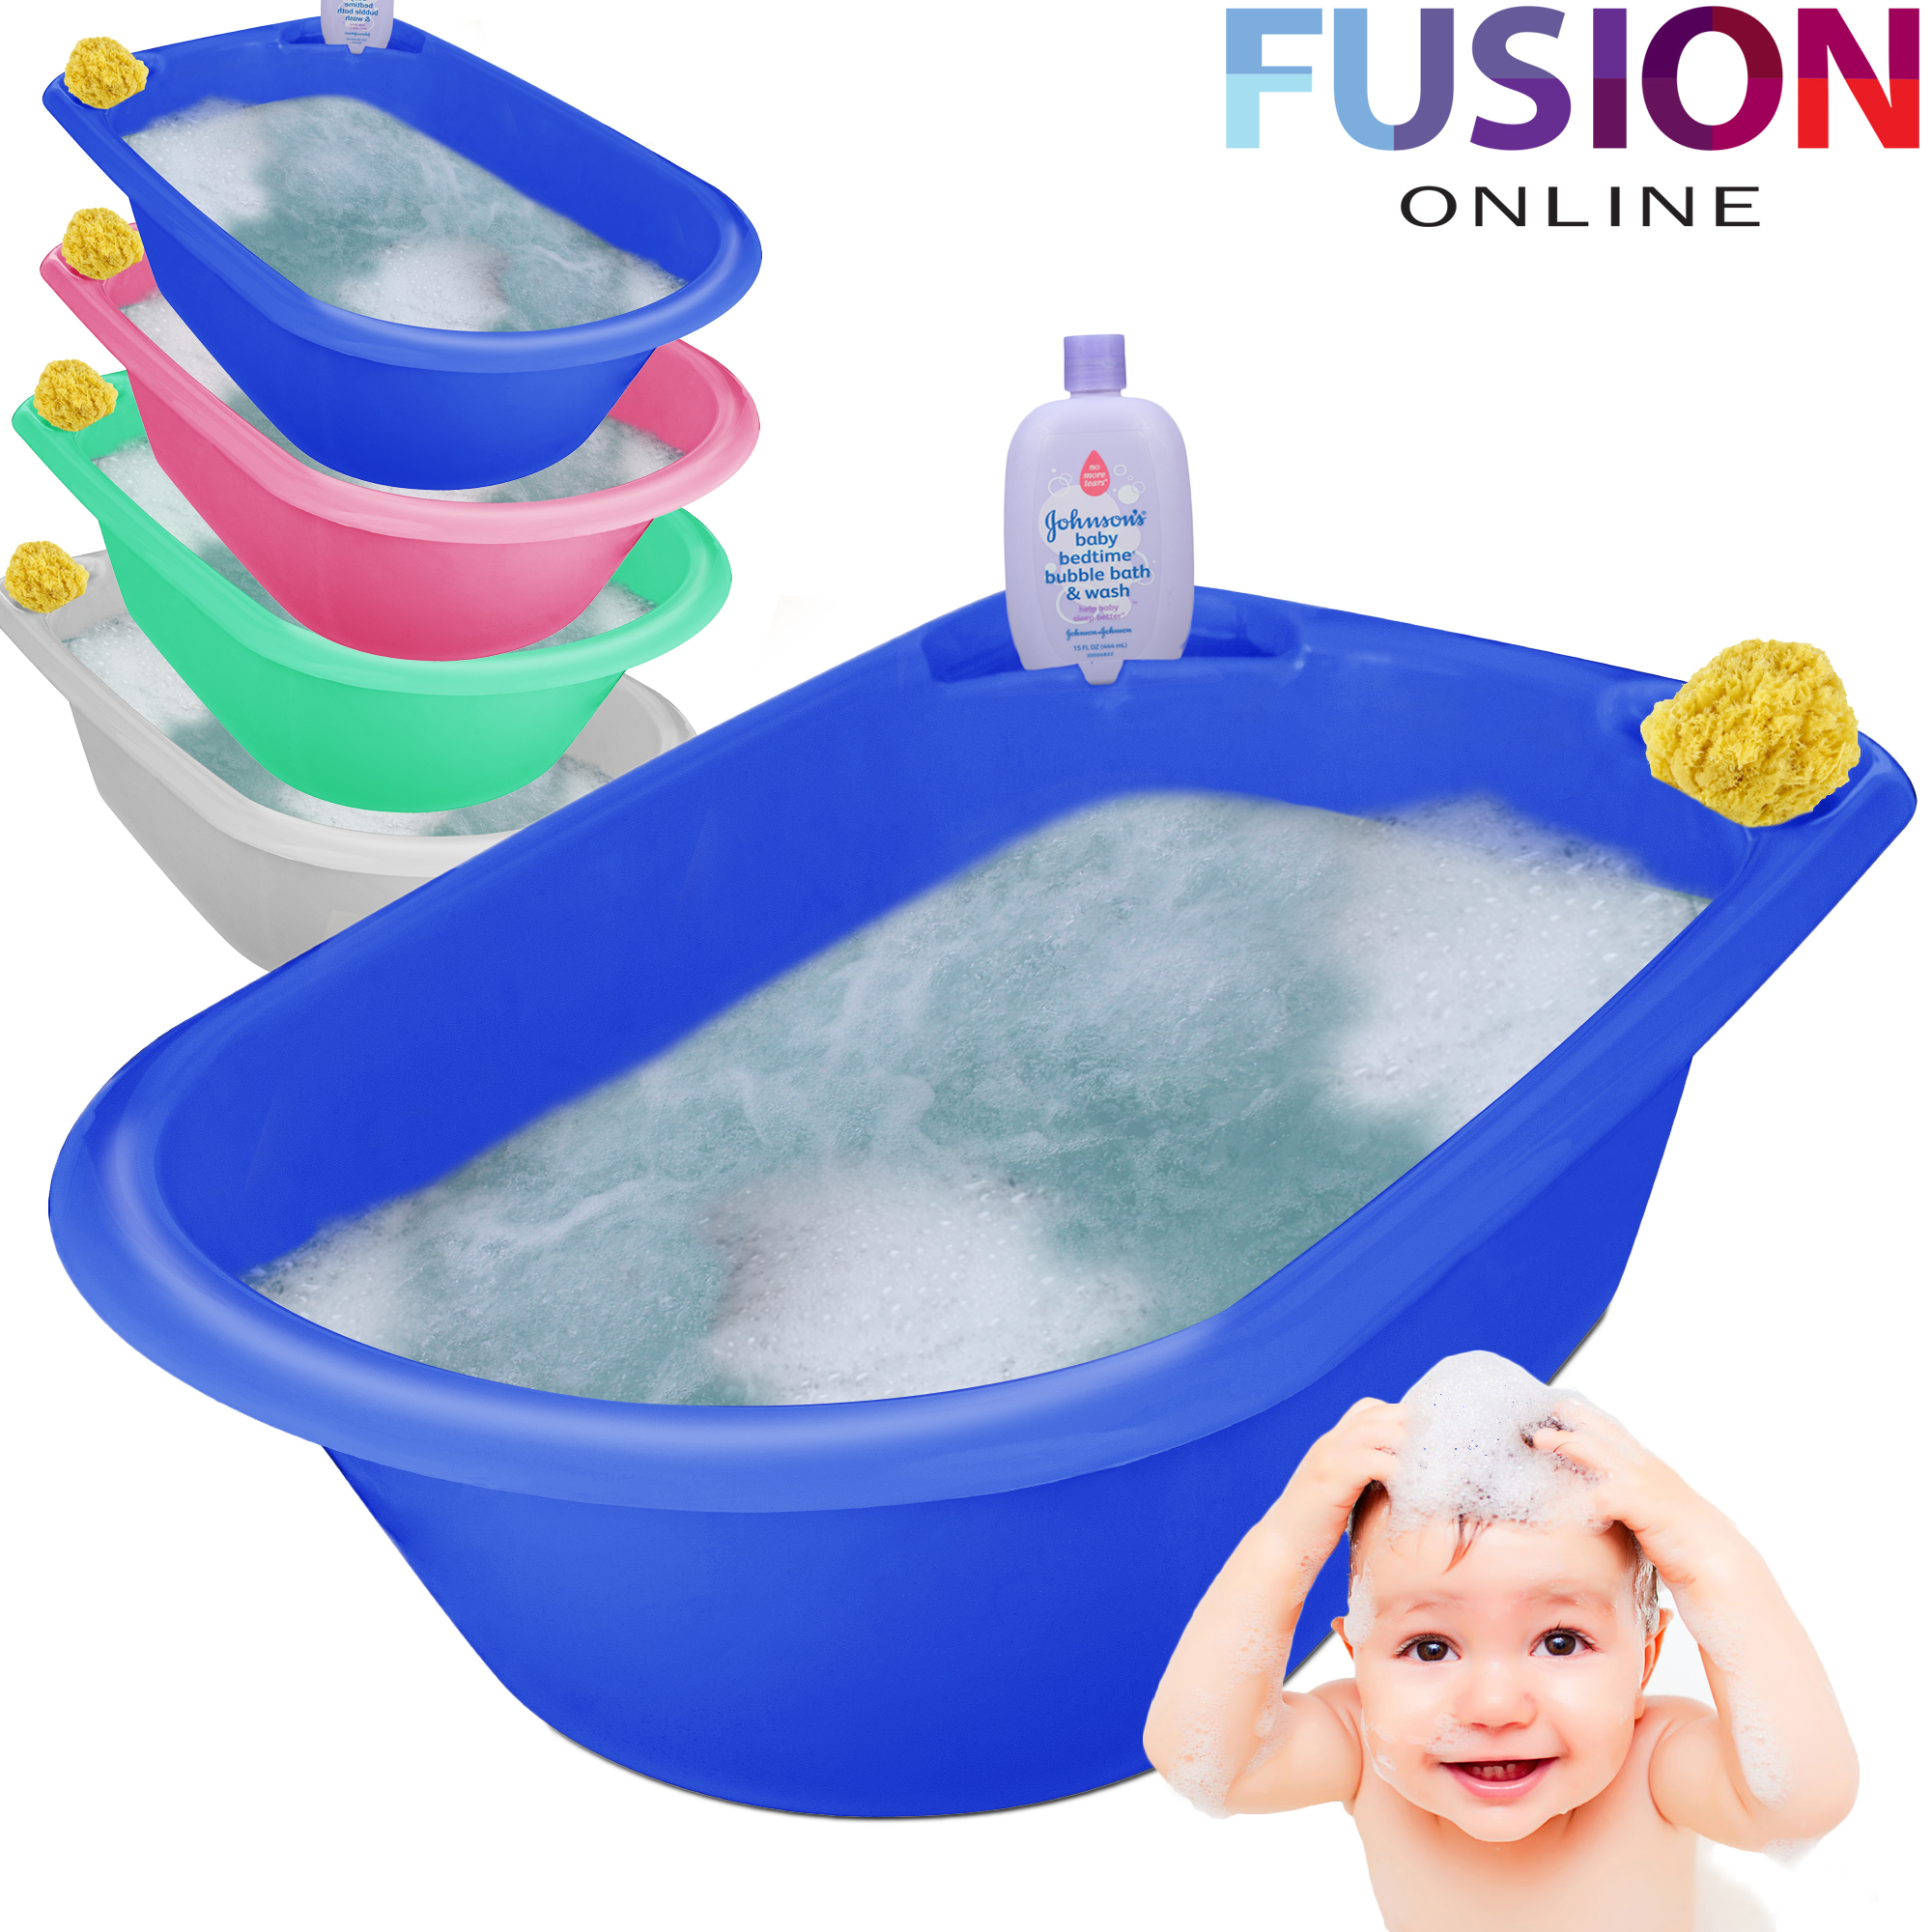 JUMBO X LARGE BABY BATH TUB PLASTIC WASHING TIME BIG TODDLER ...